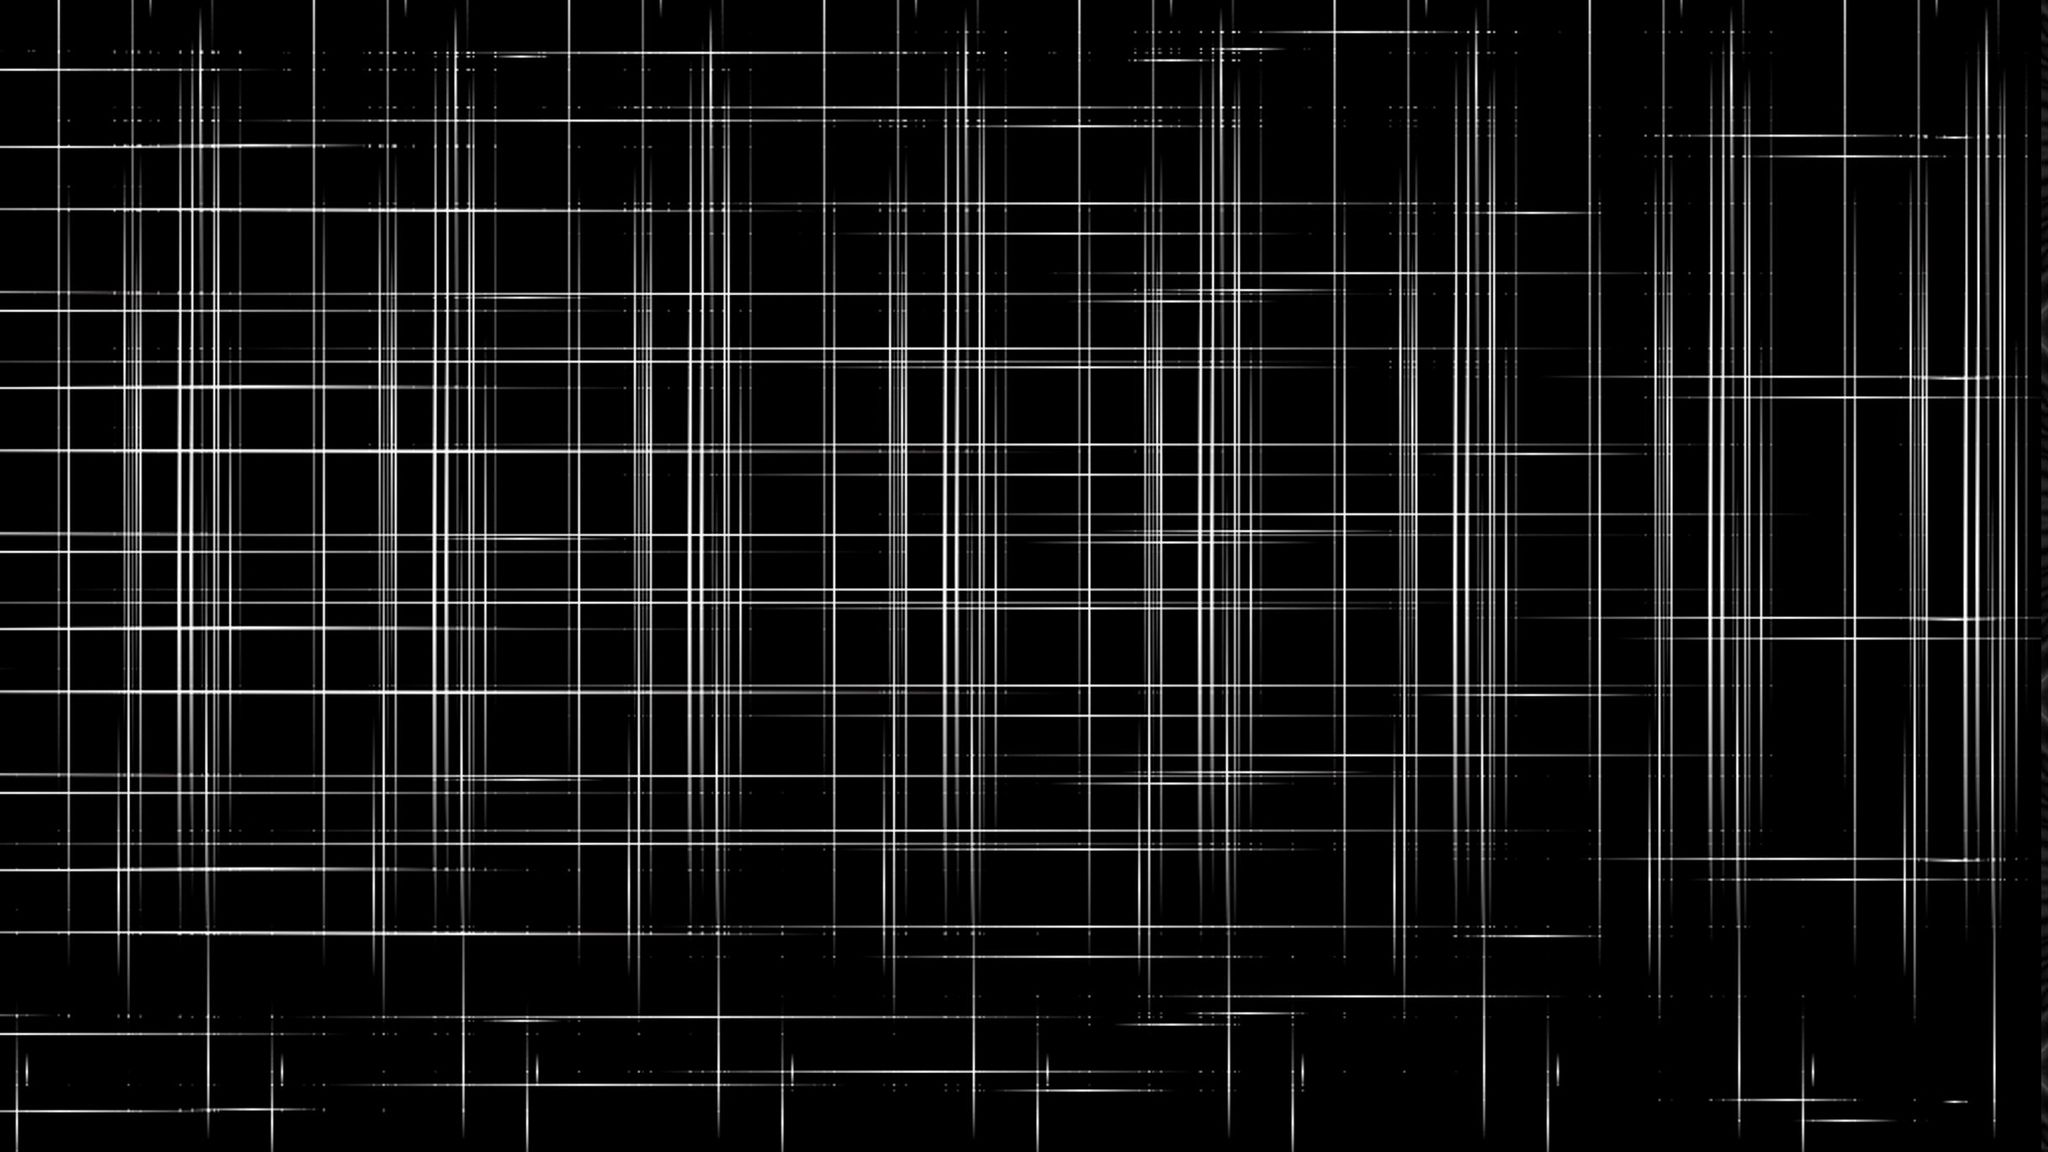 2048x1152 Wallpaper Mesh Black Background Abstract